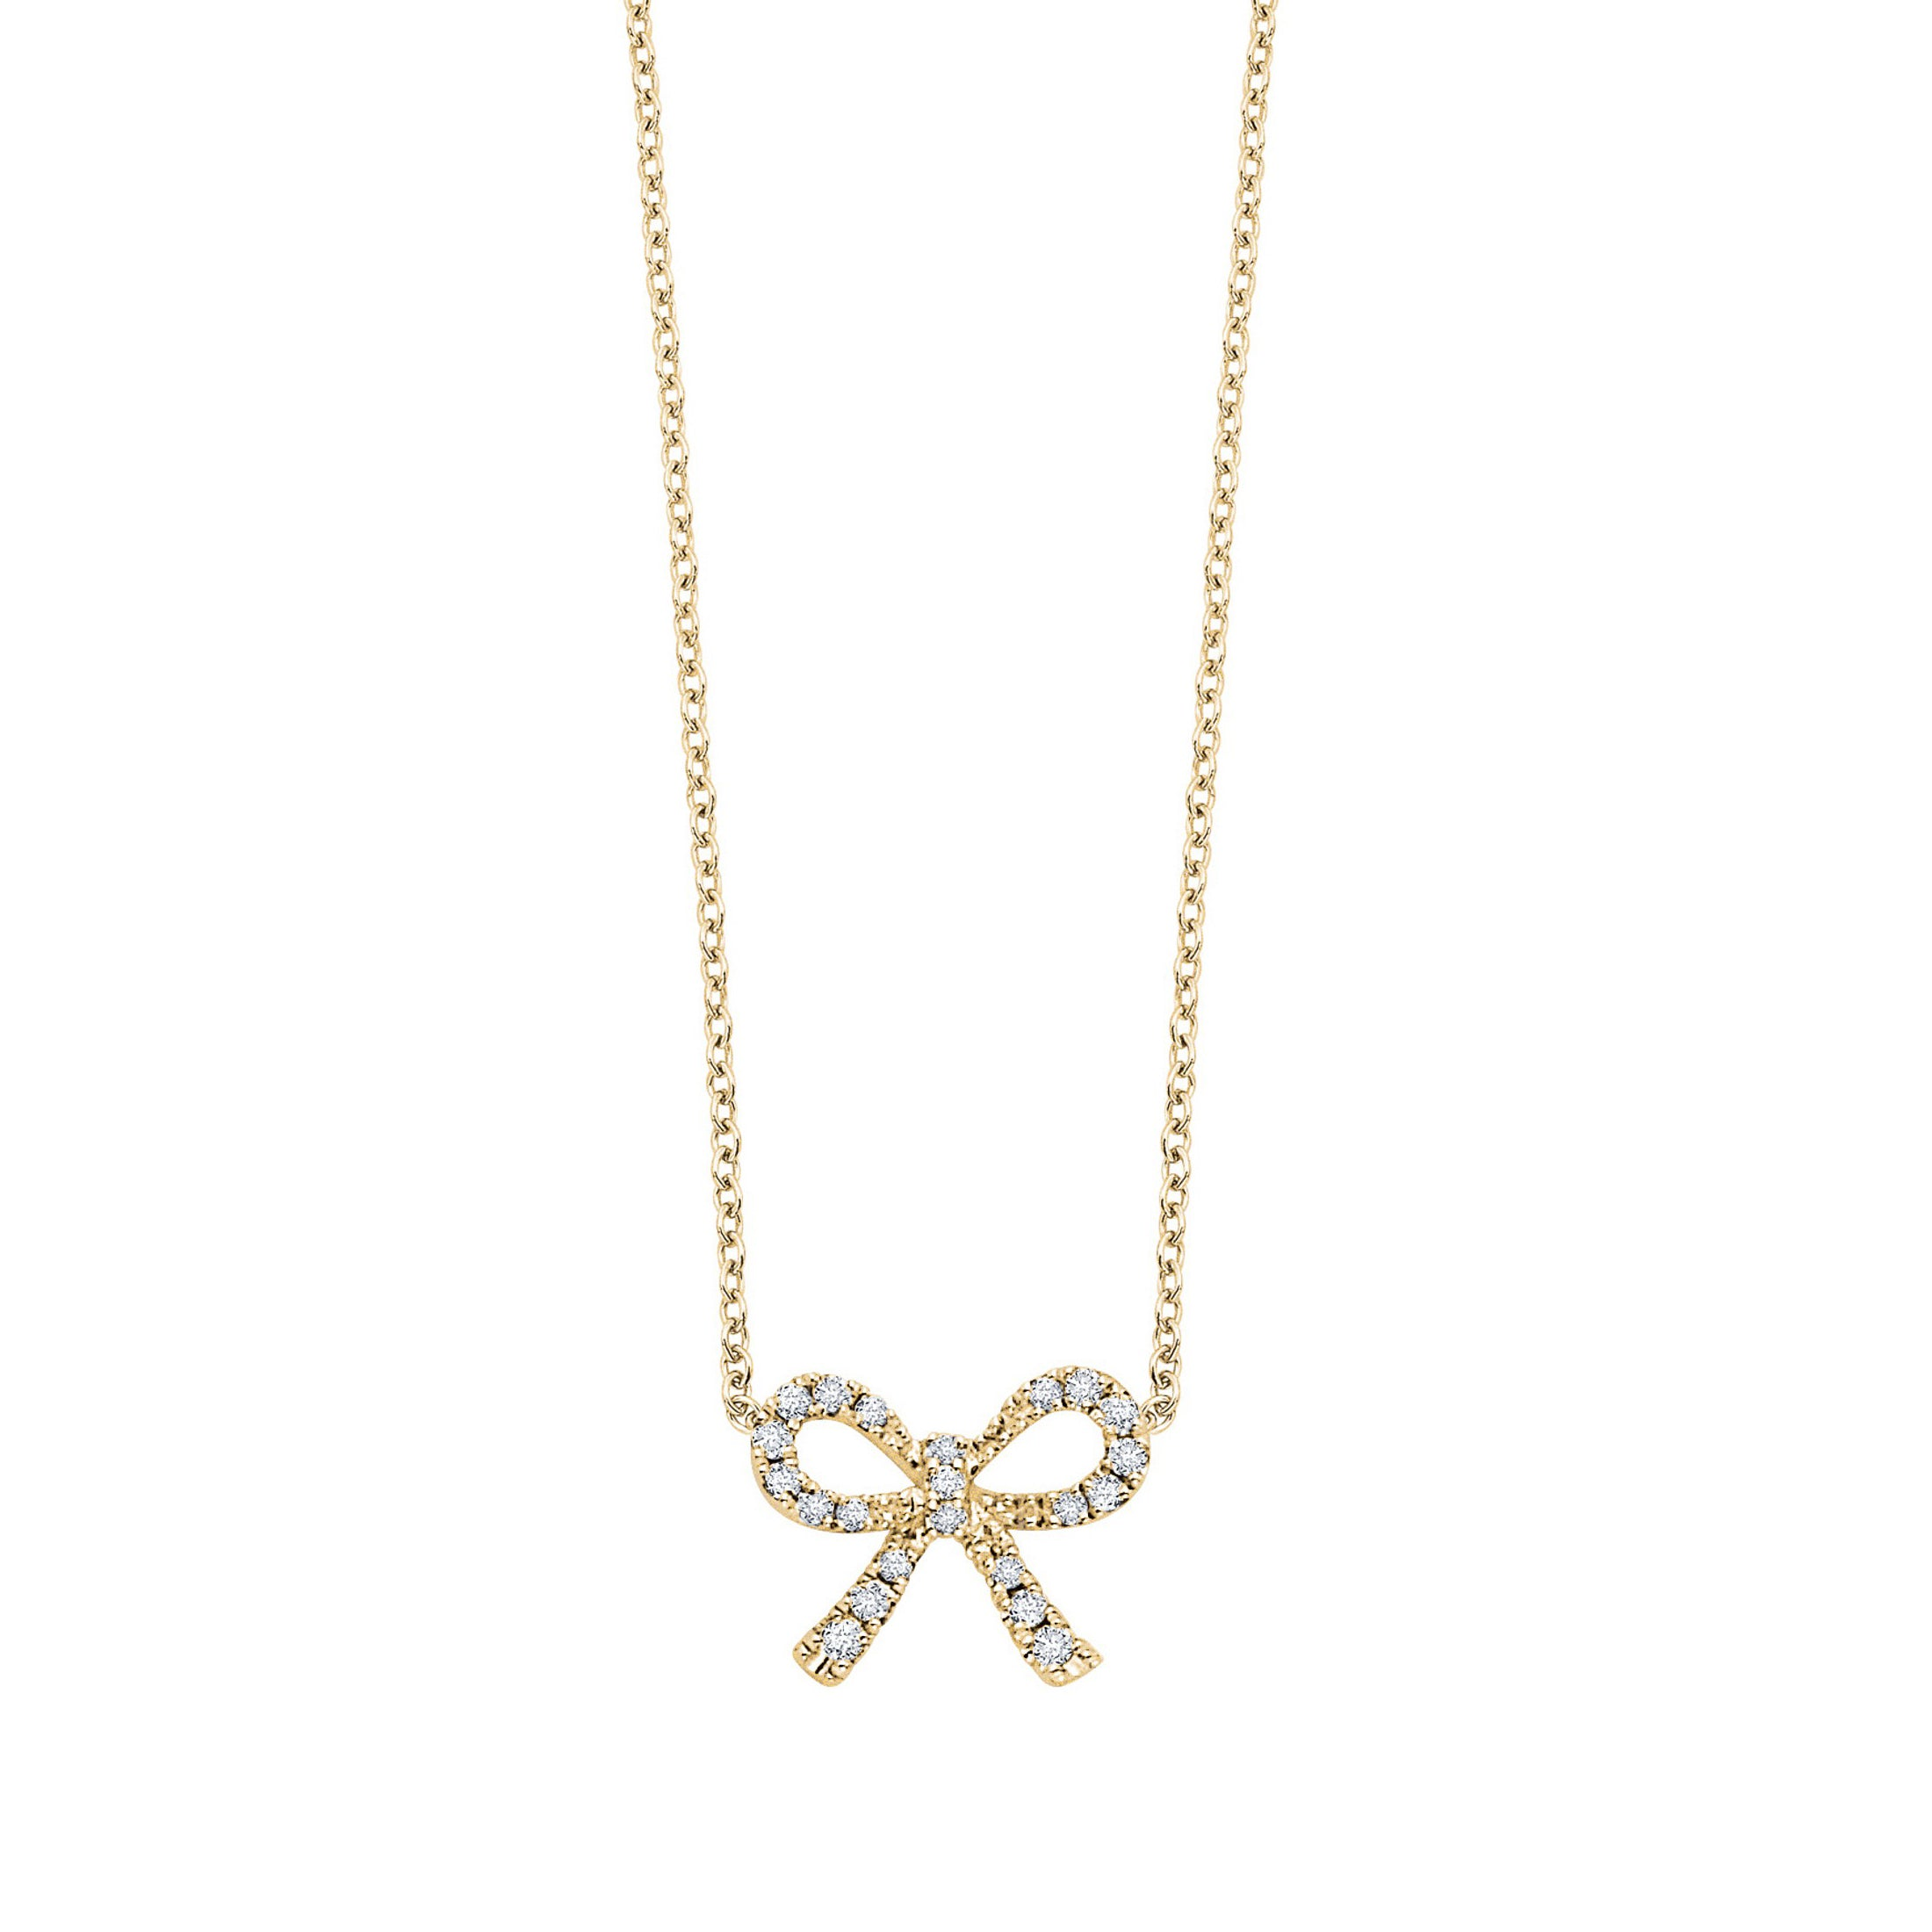 Diamond Bow Necklace, .10 Carat, 14K Yellow Gold, 16 Inches